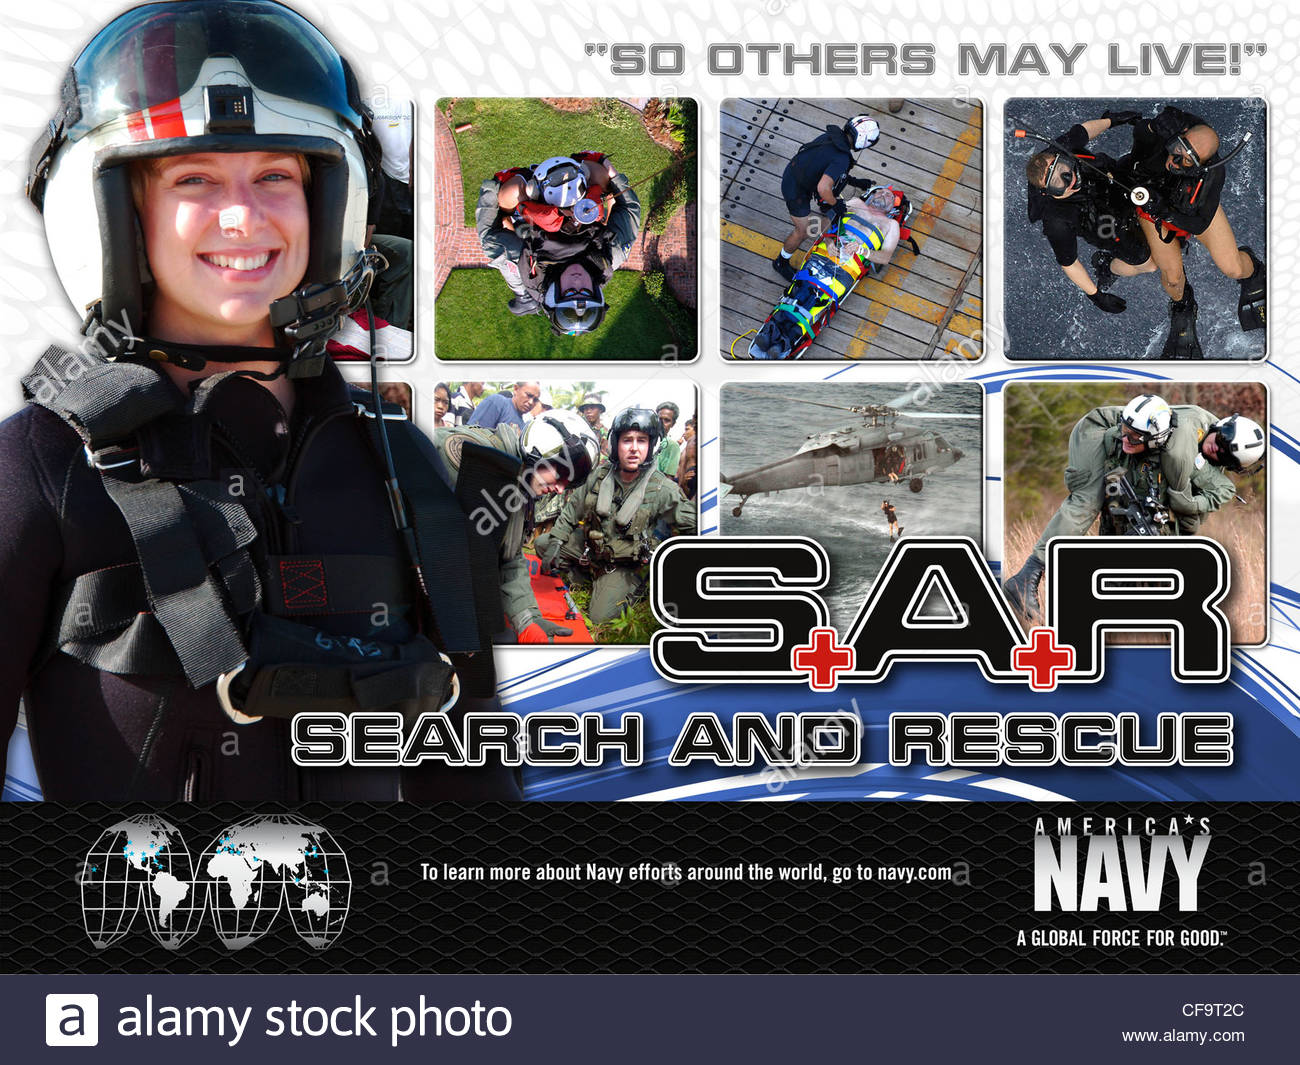 navy recruiting poster featuring a w stock photo royalty navy recruiting poster featuring a w